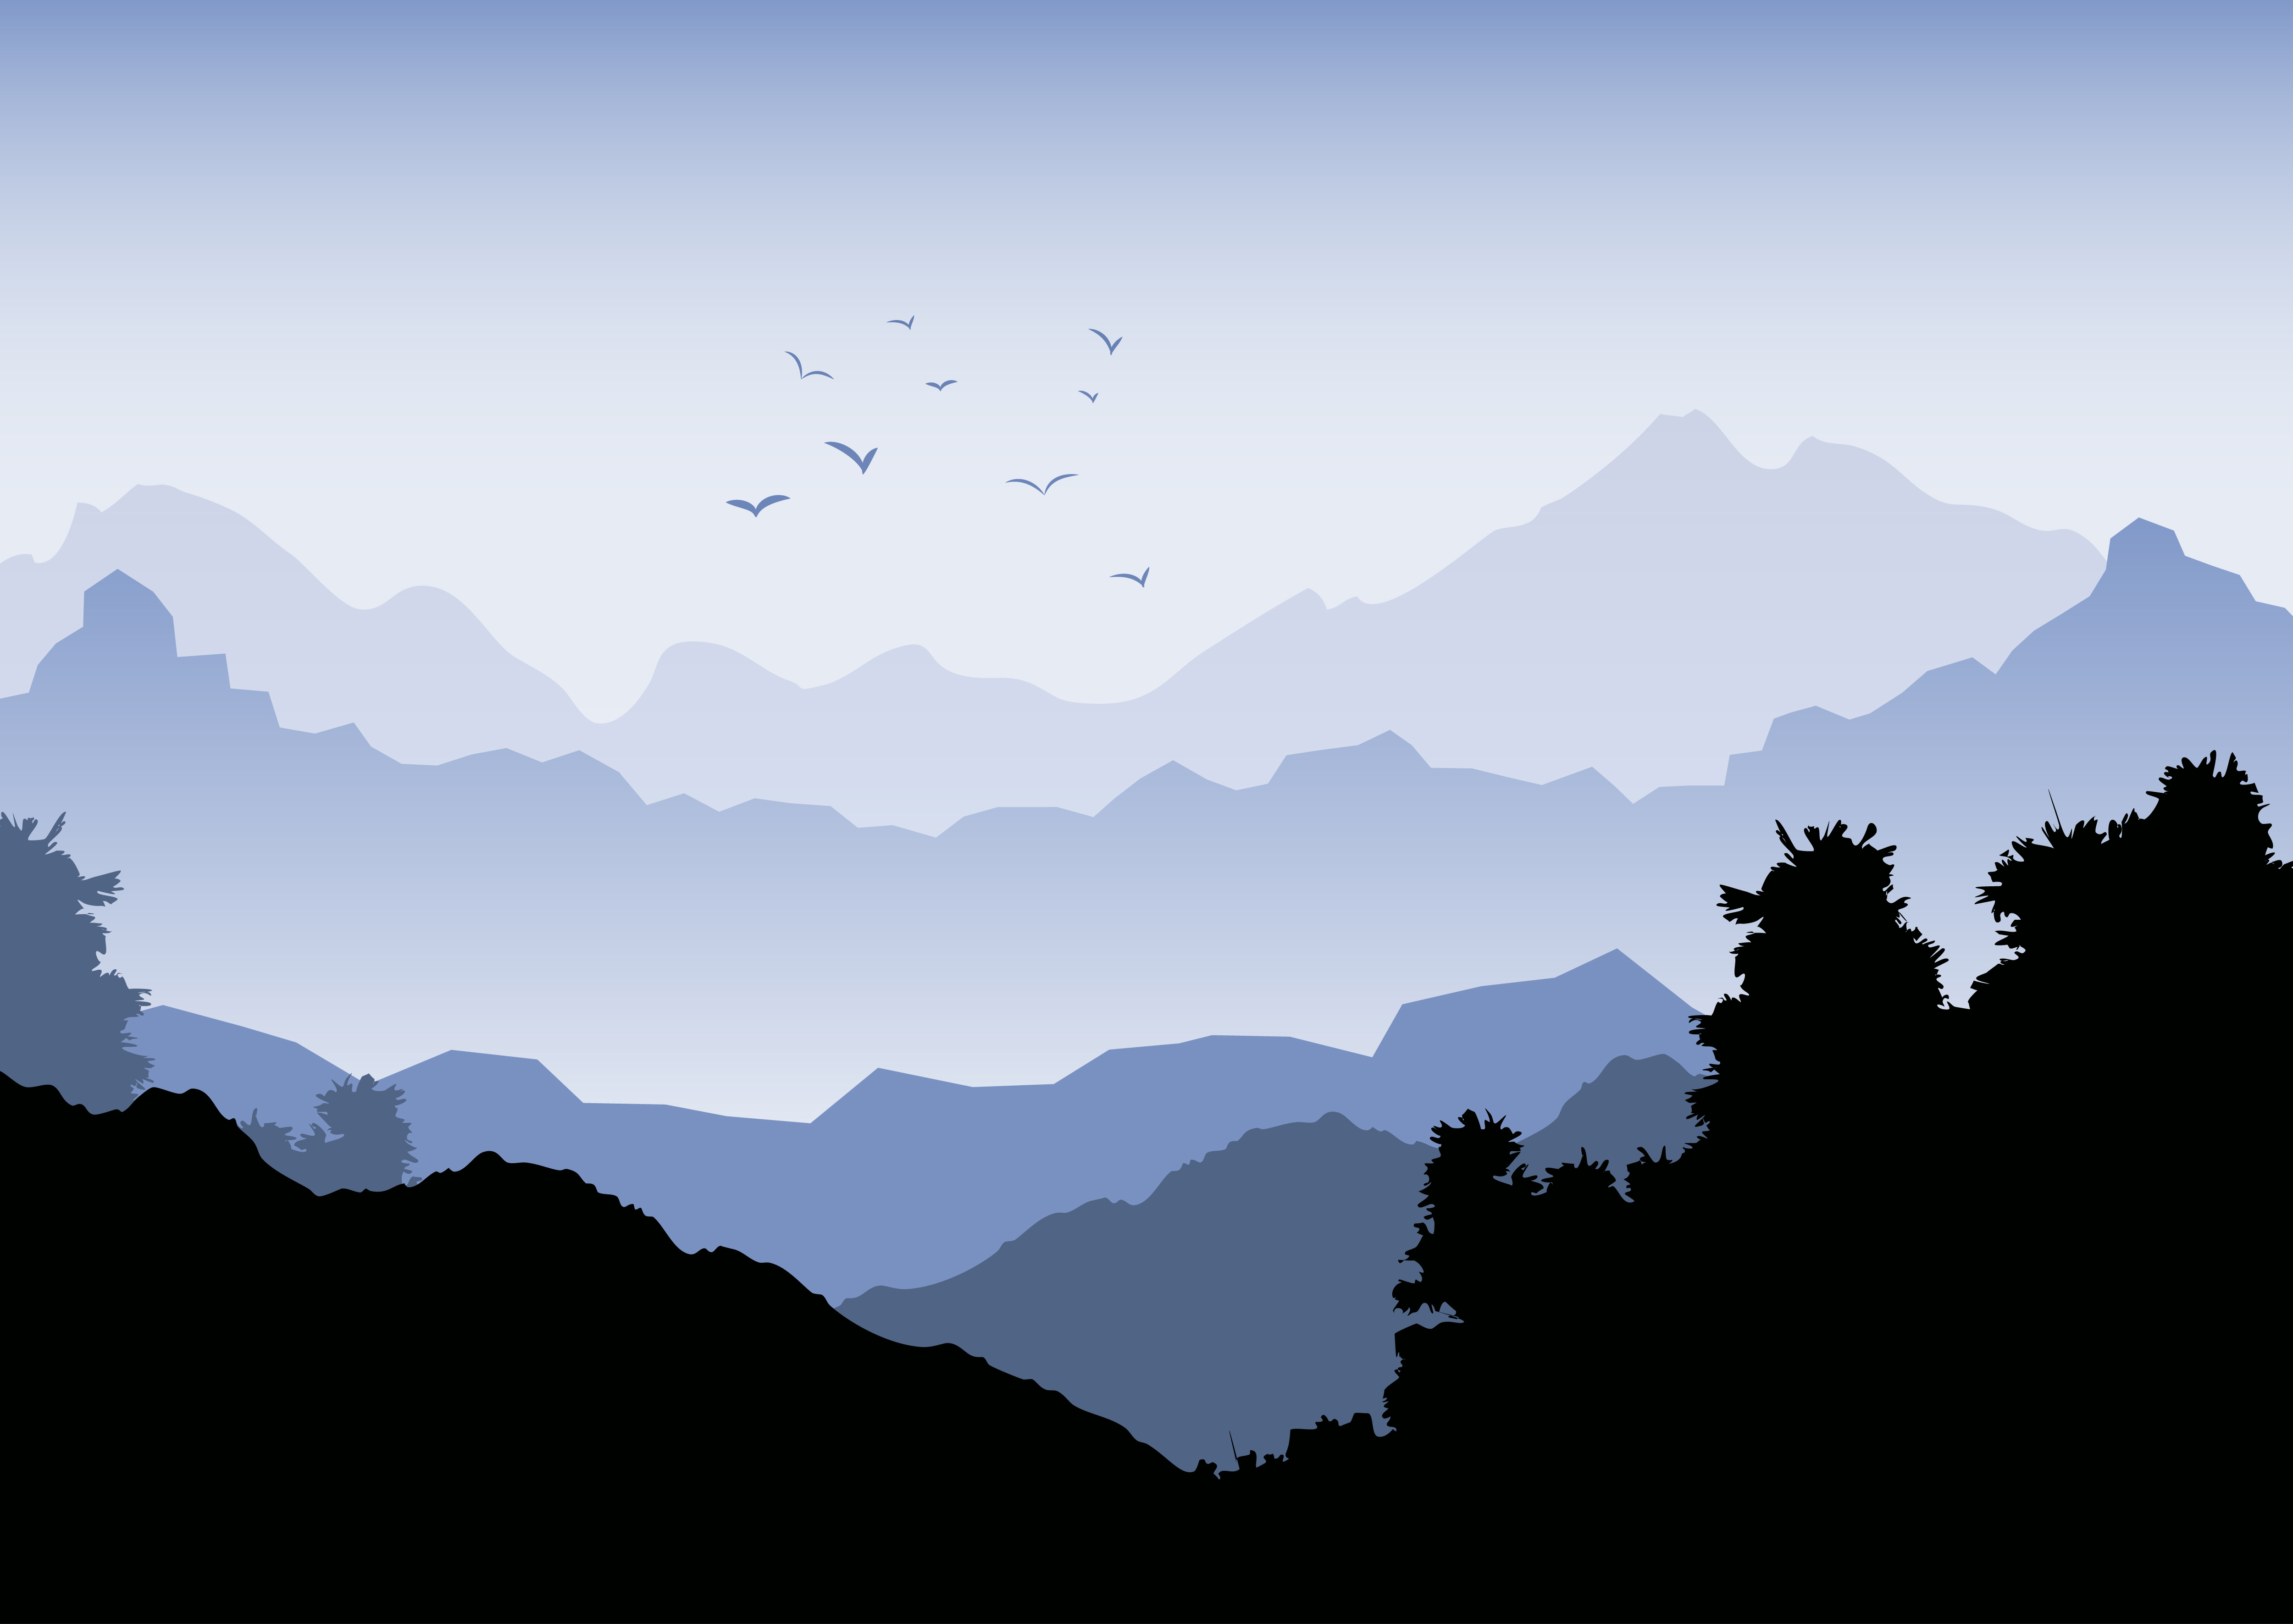 Landscape Background With Mountains And Flock Of Birds 342777 Vector Art At  Vecteezy